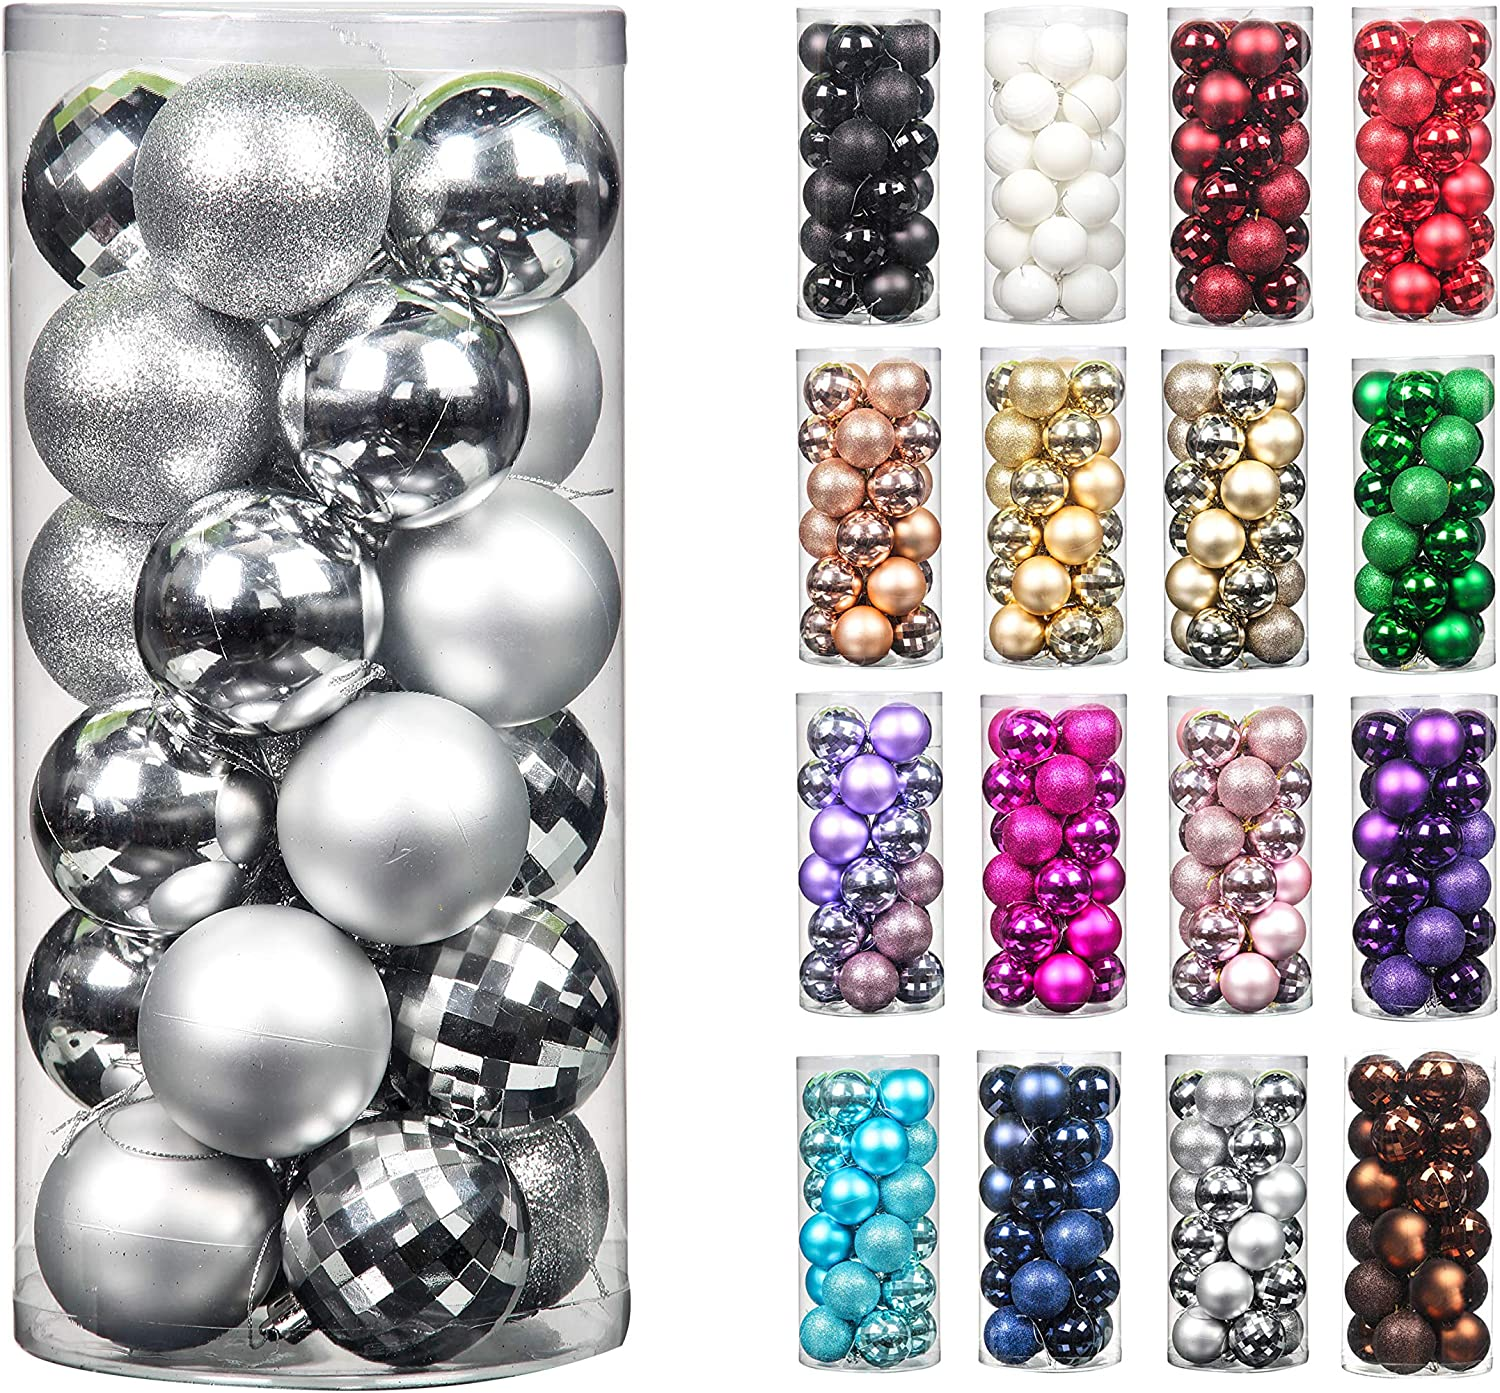 24pcs 2.36in Christmas Decoration Balls Shatterproof Color Set Ornaments Balls for Festival Wedding Home Party Decors Xmas Tree Hanging ( Silver)